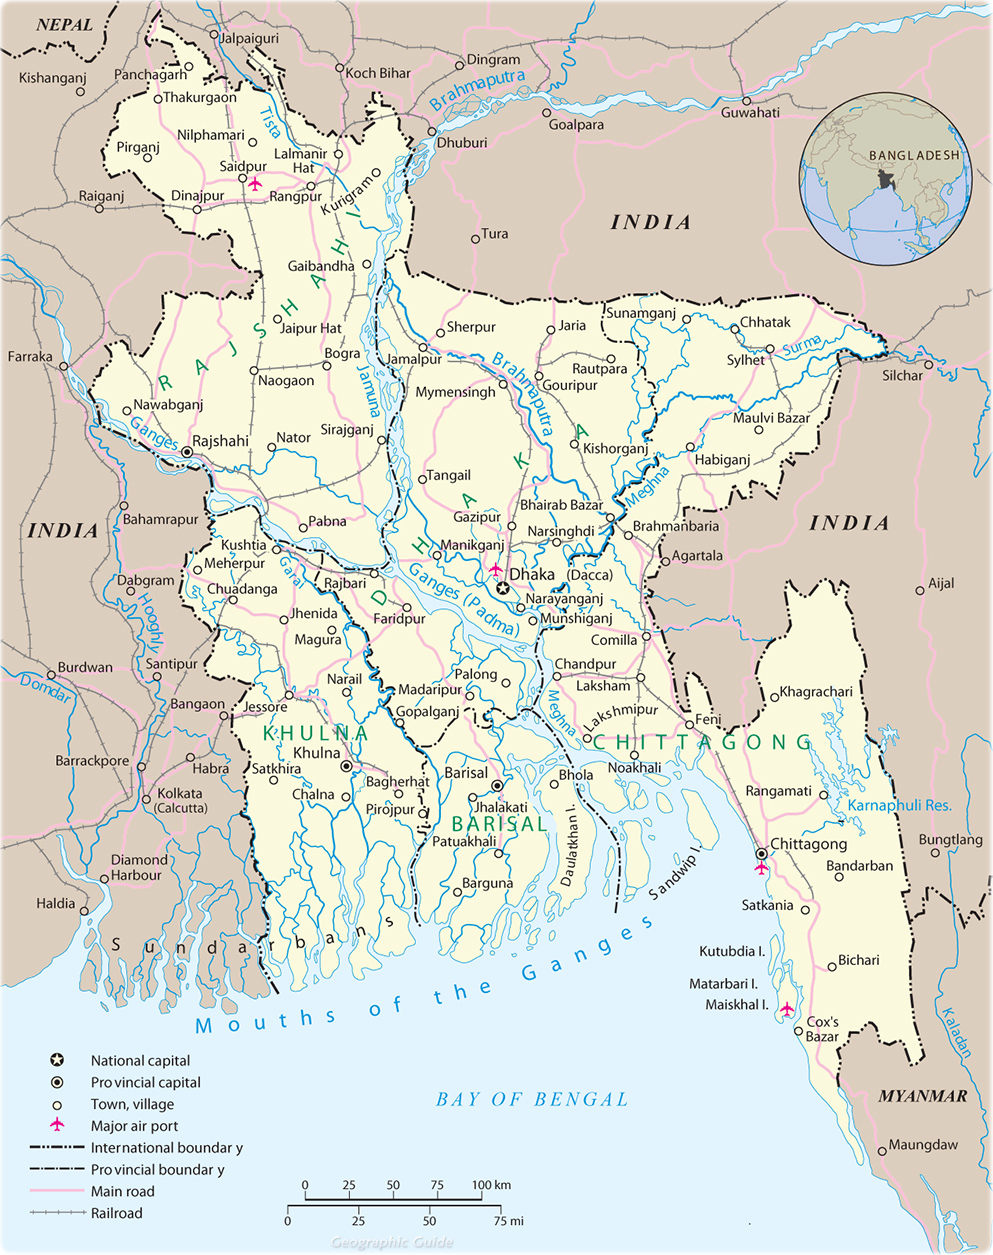 desh Map, Dhaka - Asia Dhaka Map on